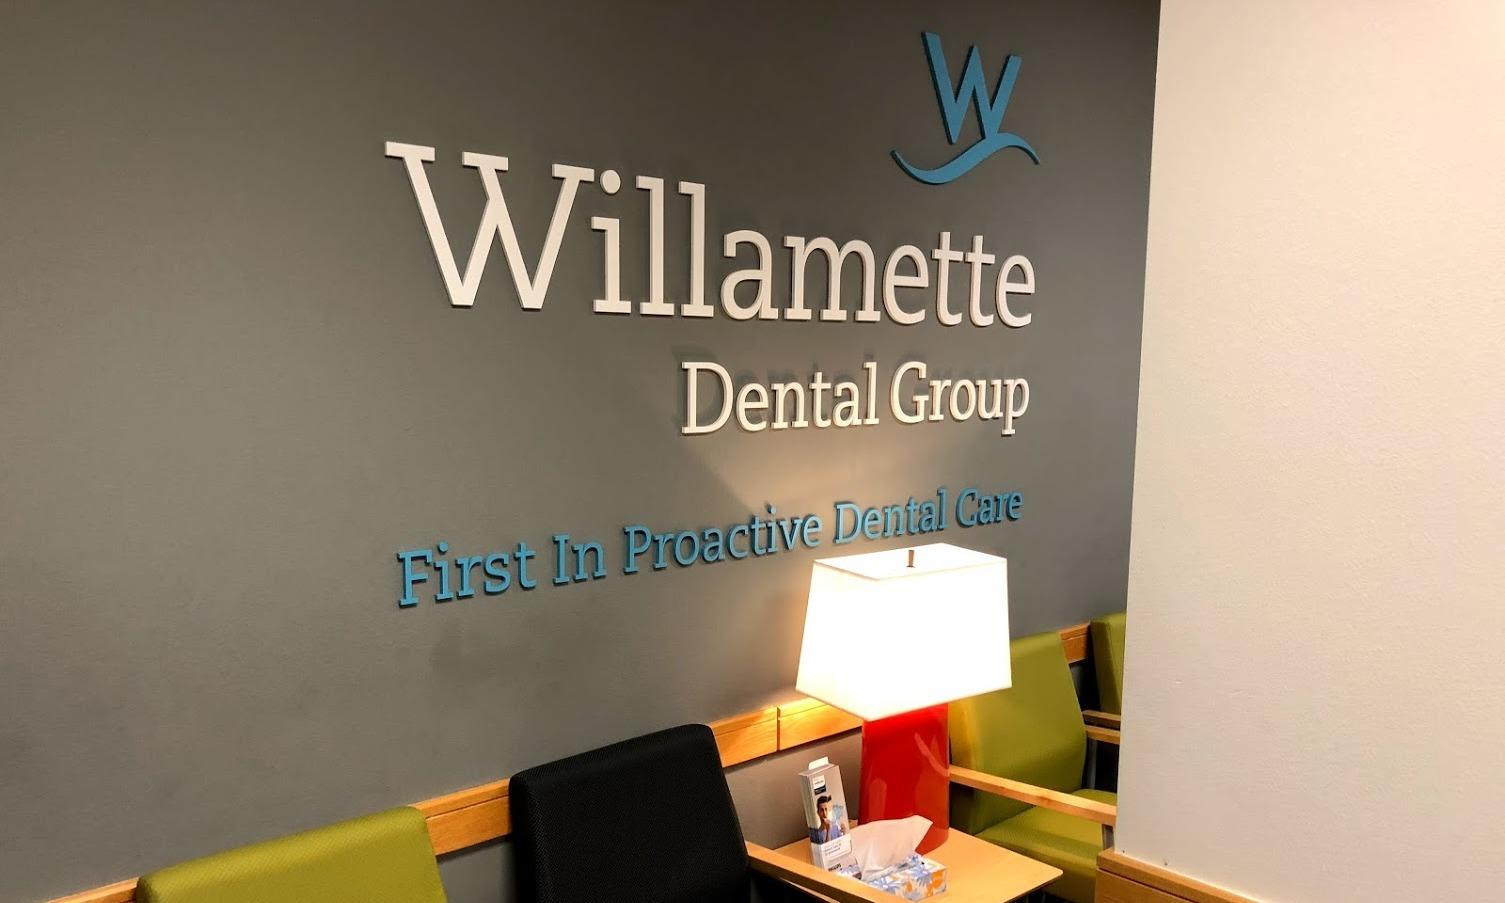 Willamette Dental Group - Northgate Specialty image 3